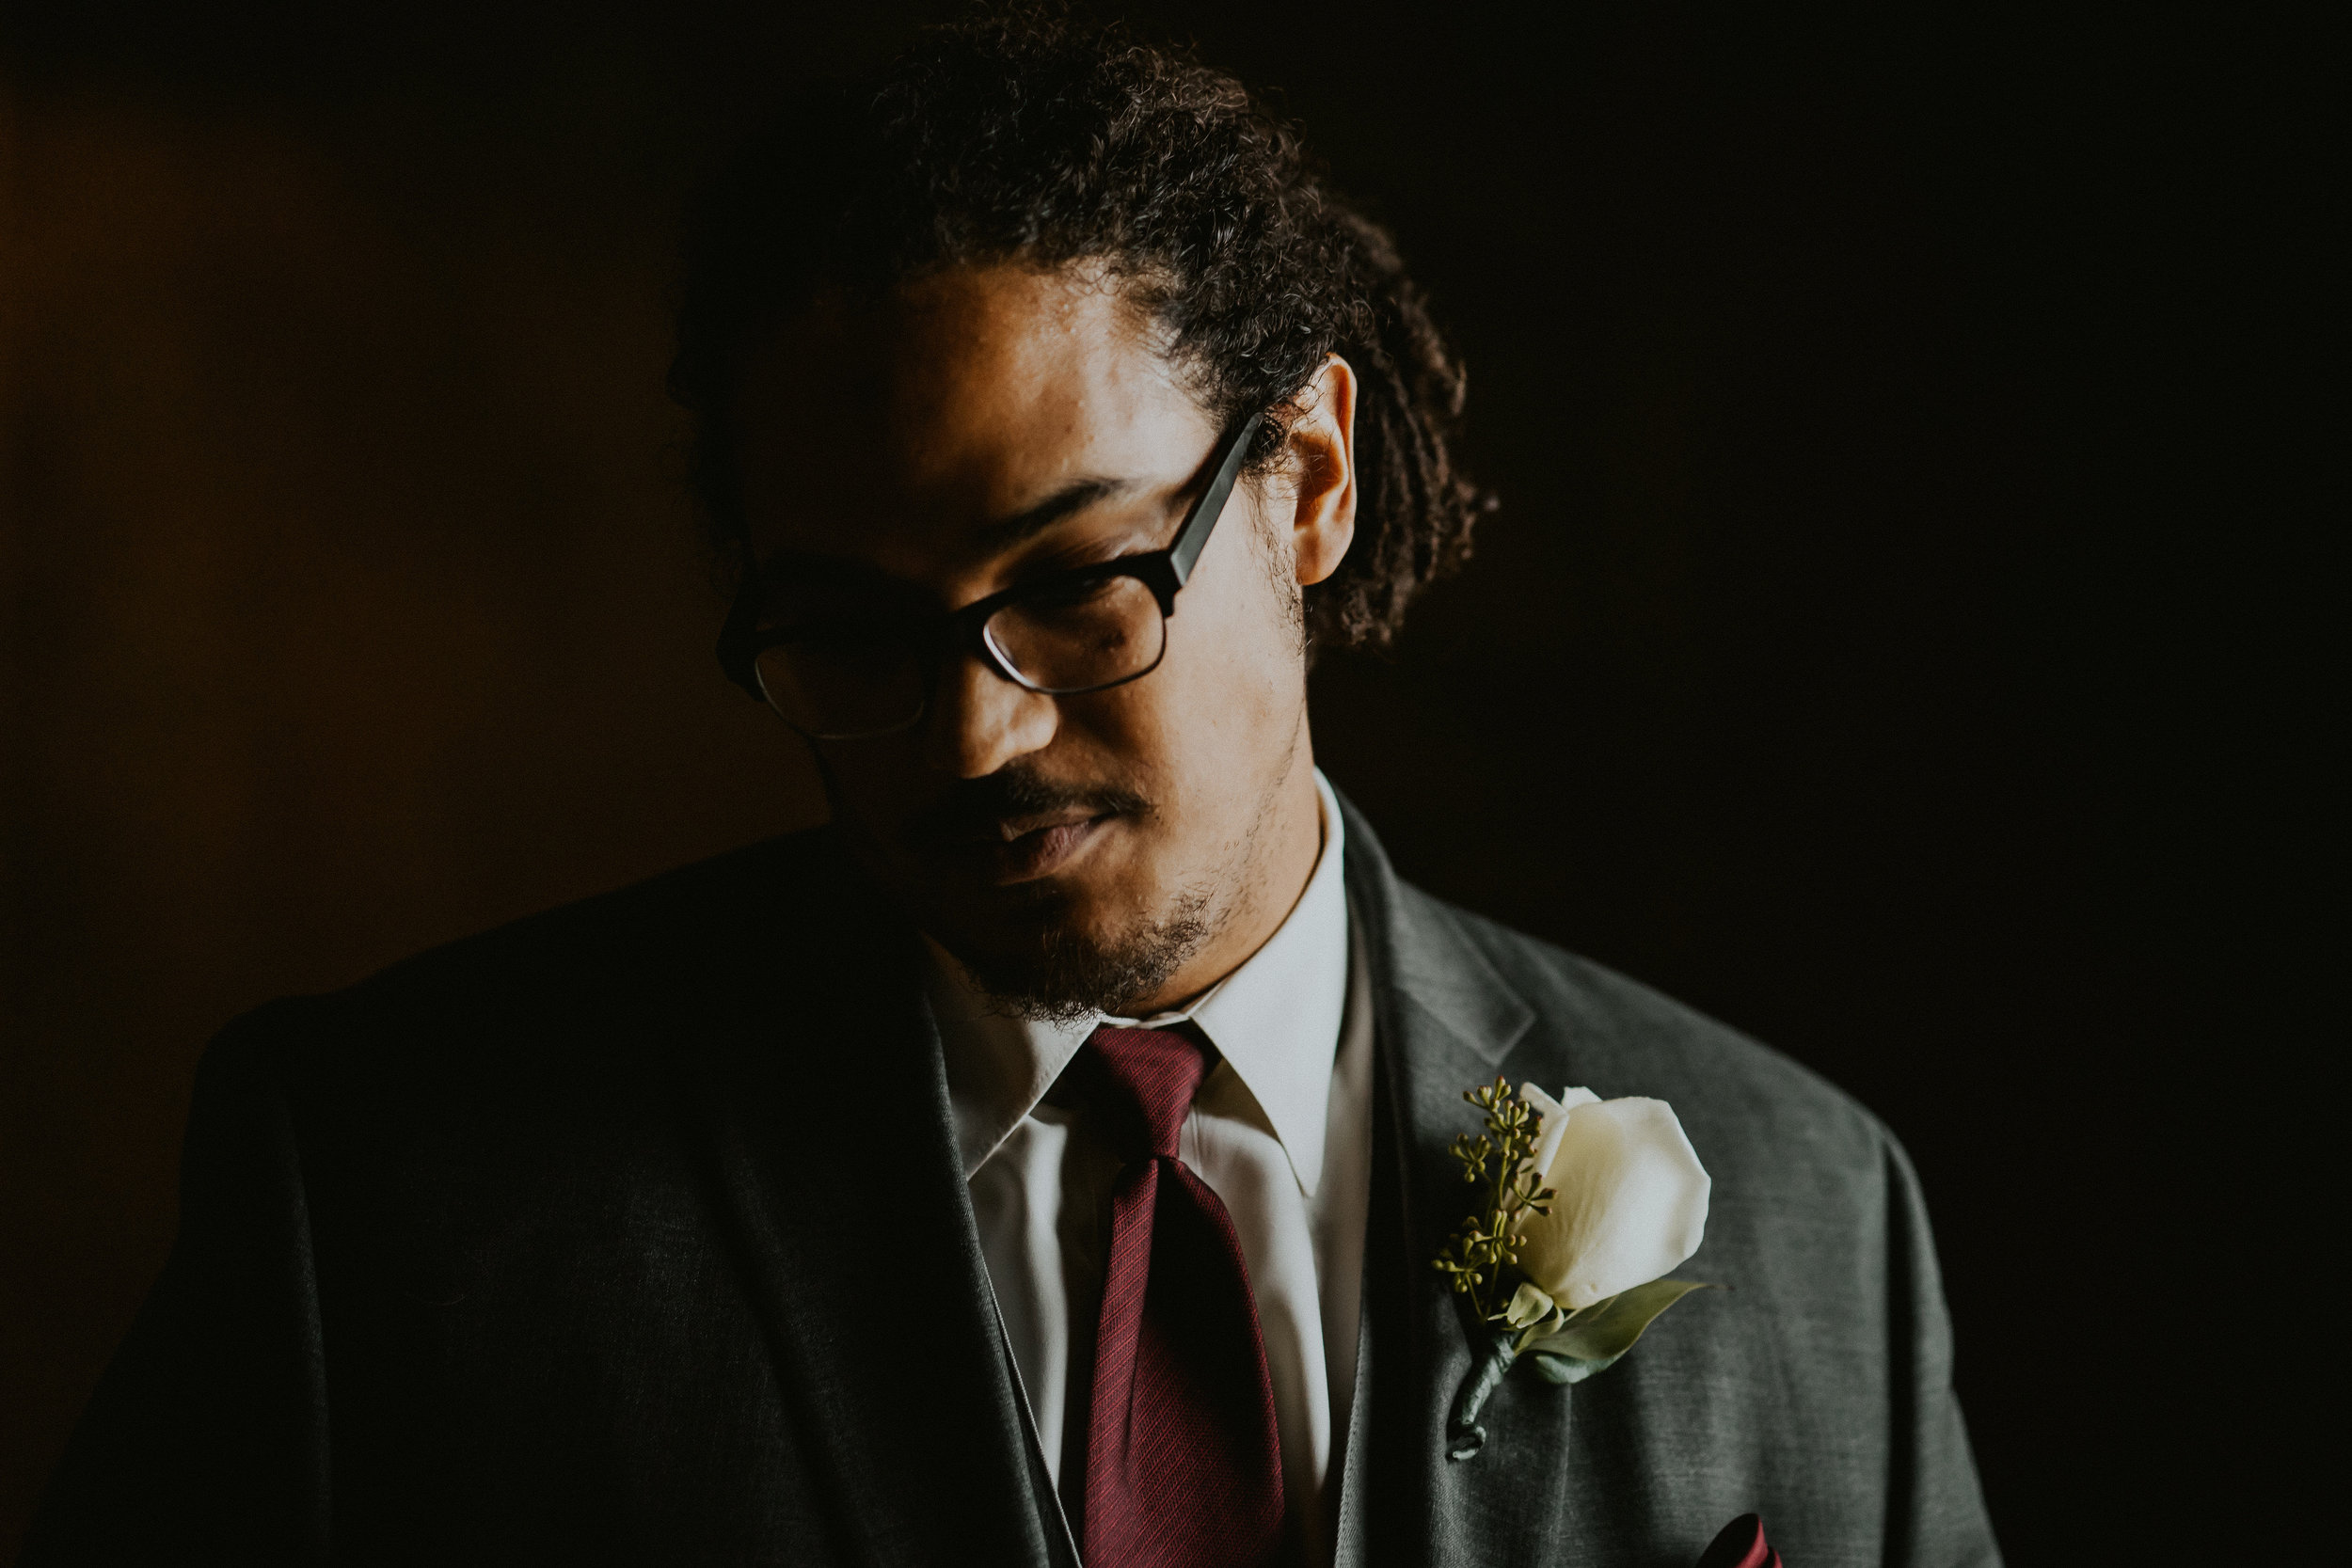 Groom portrait photo Seattle Wedding Photographer